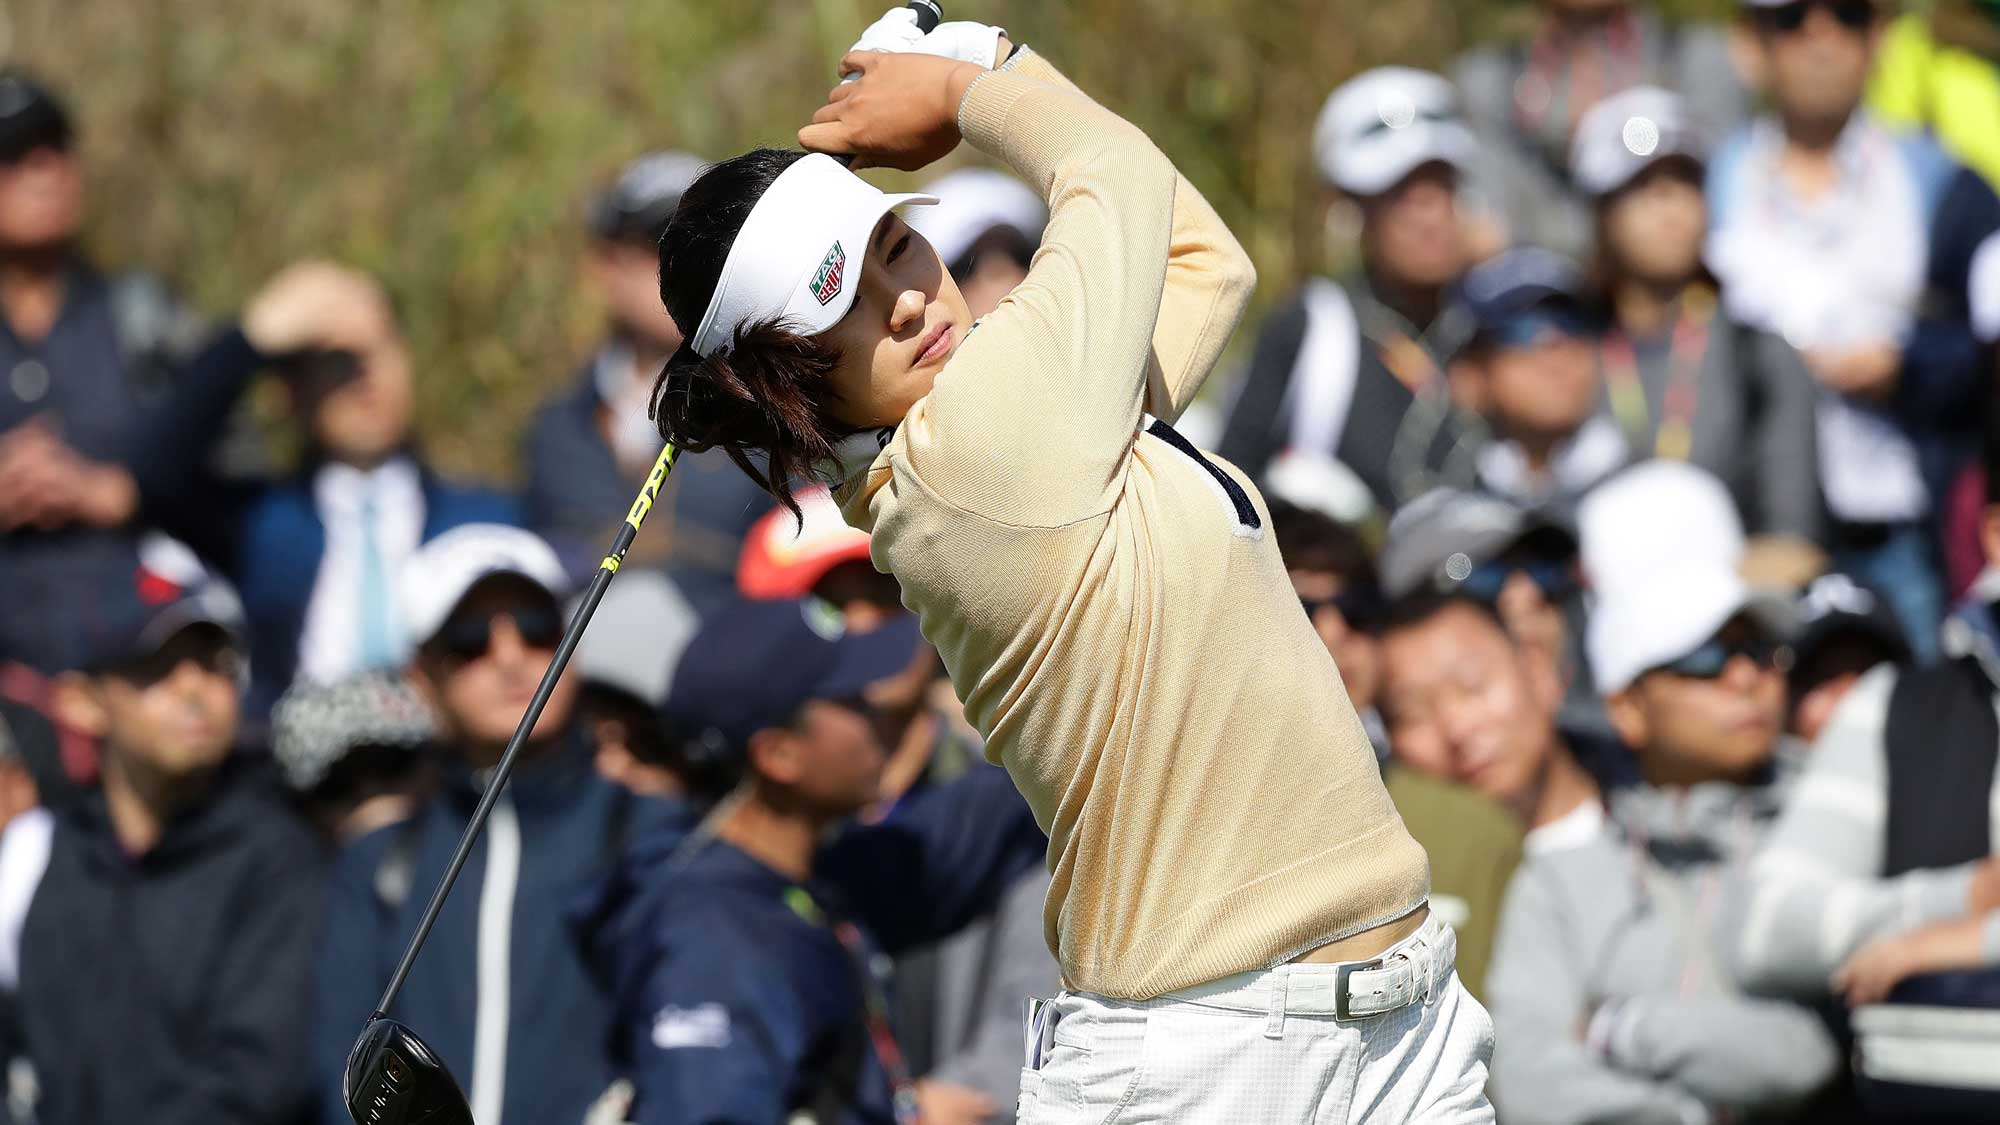 In-Gee Chun of South Korea plays a tee shot on the 7th hole during the final round of the LPGA KEB Hana Bank Championship